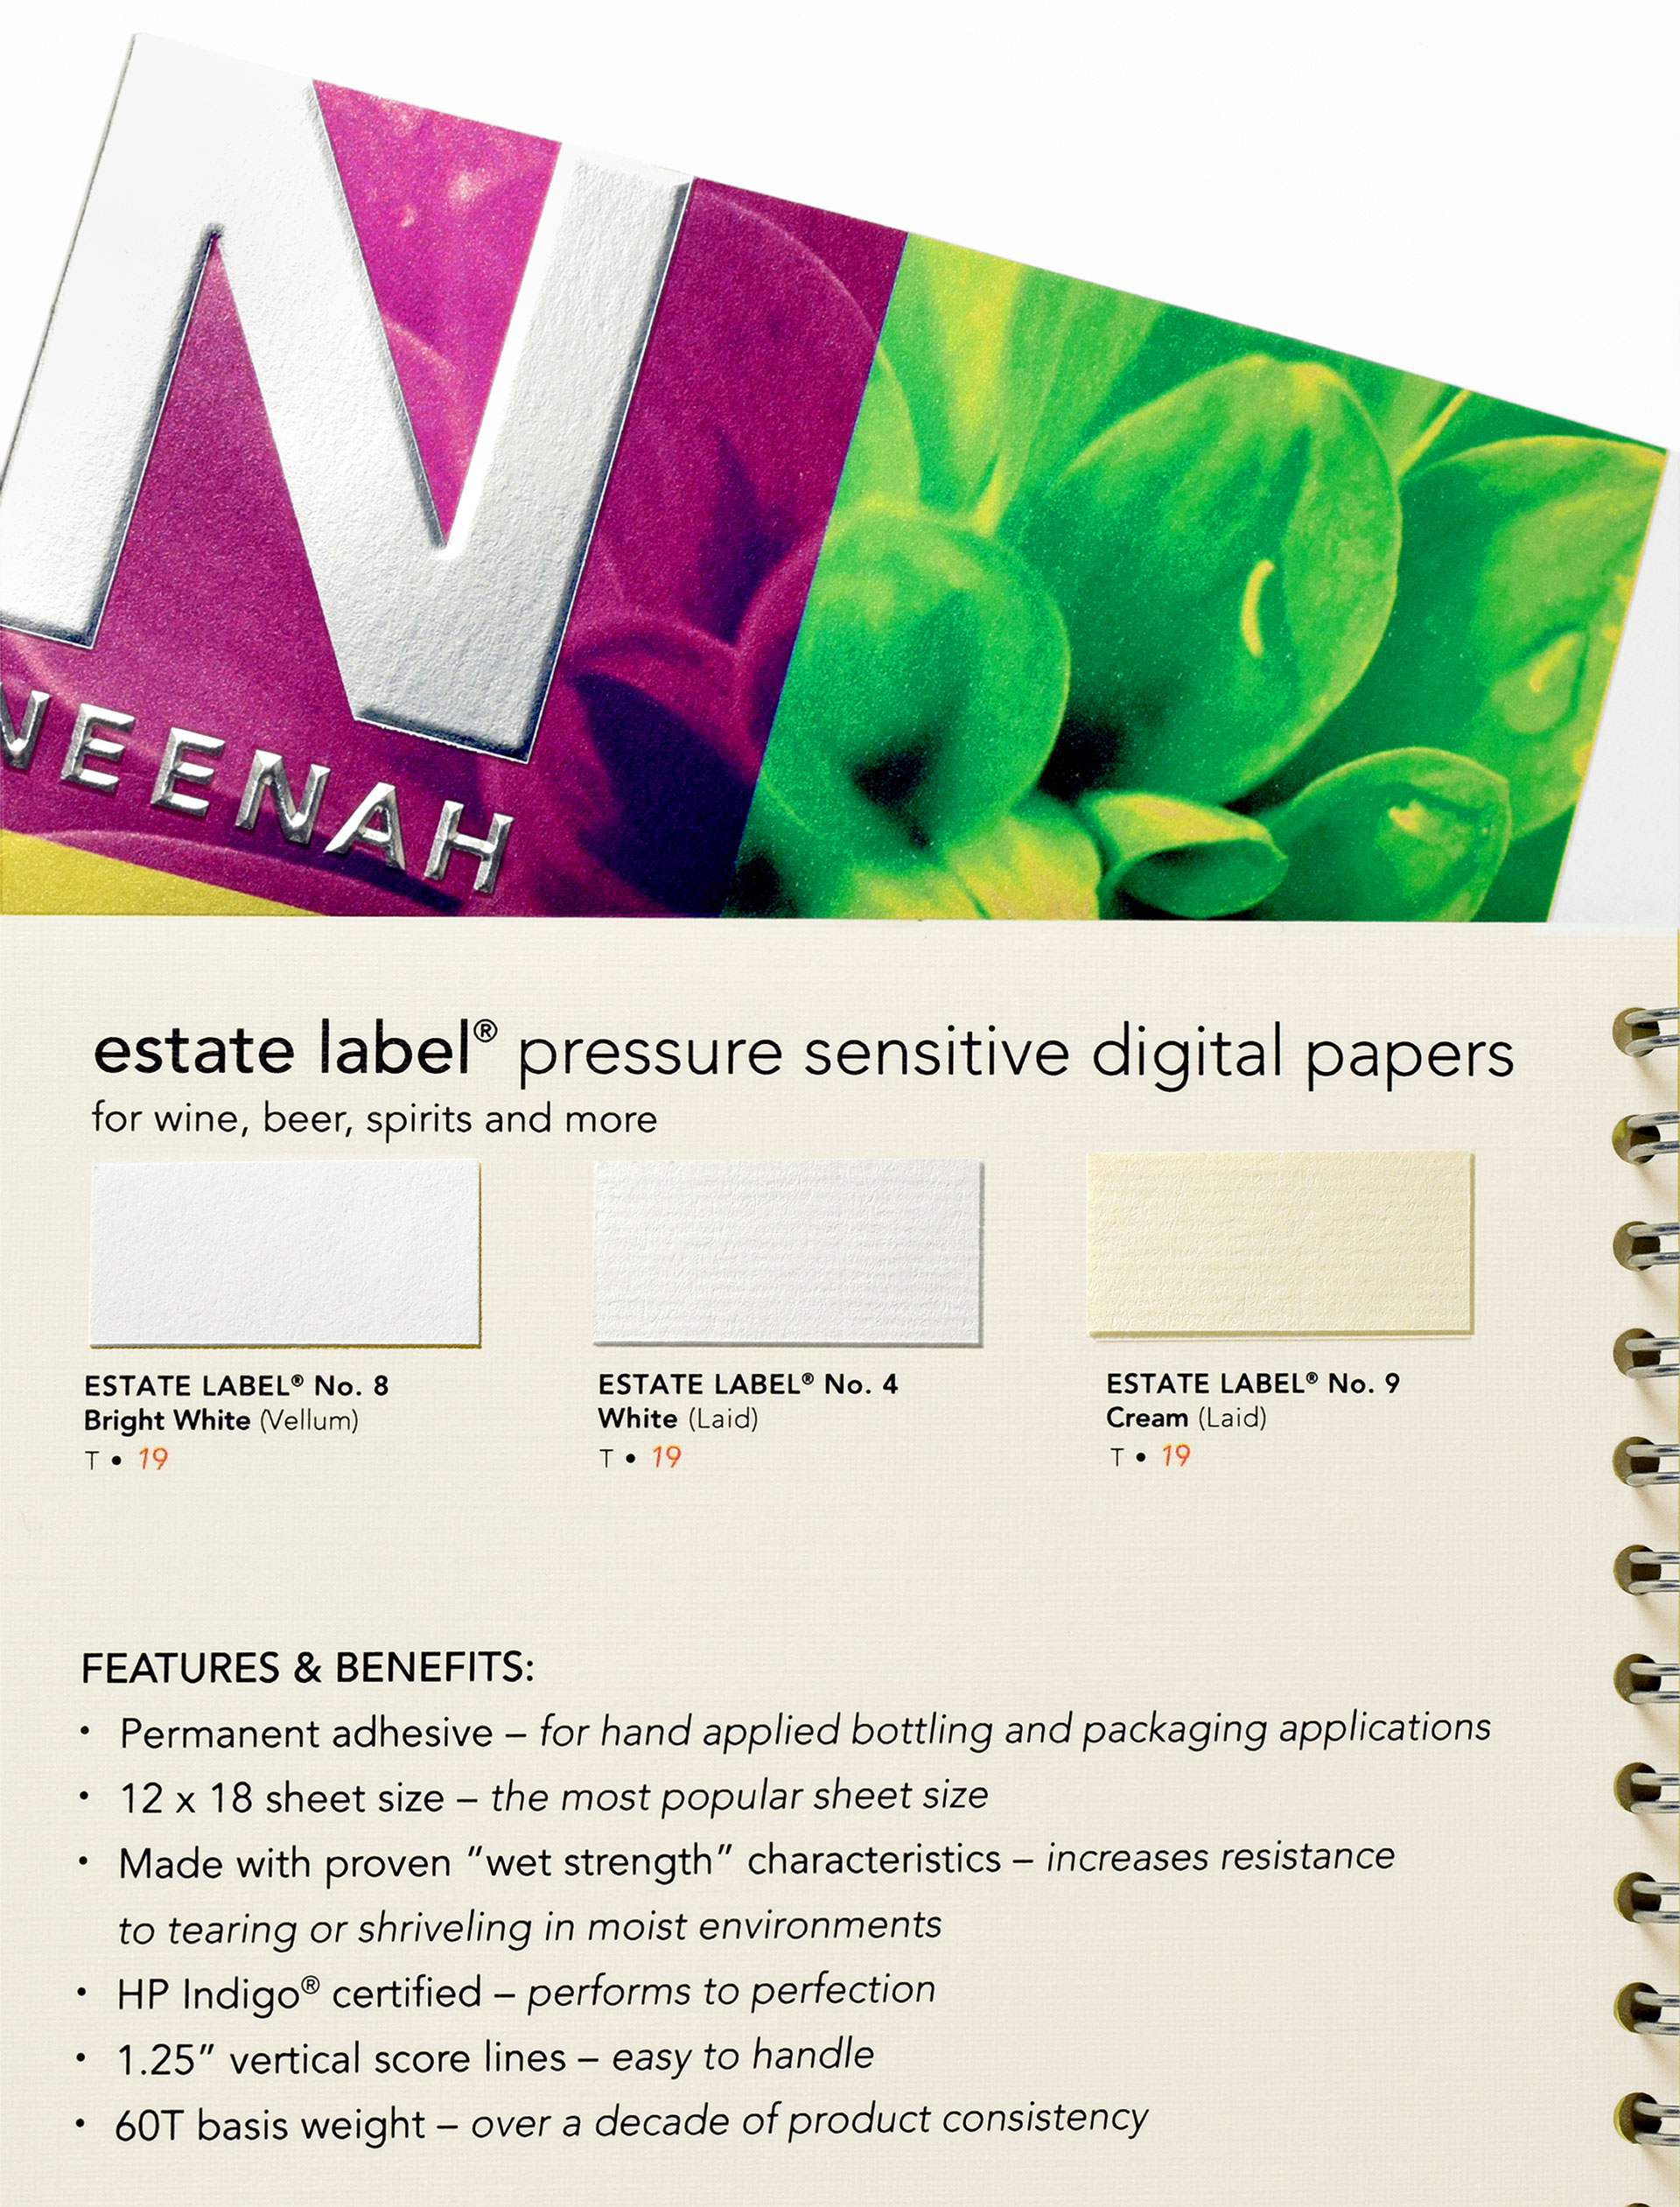 6-Neenah-Digital-Papers-Estate-Label